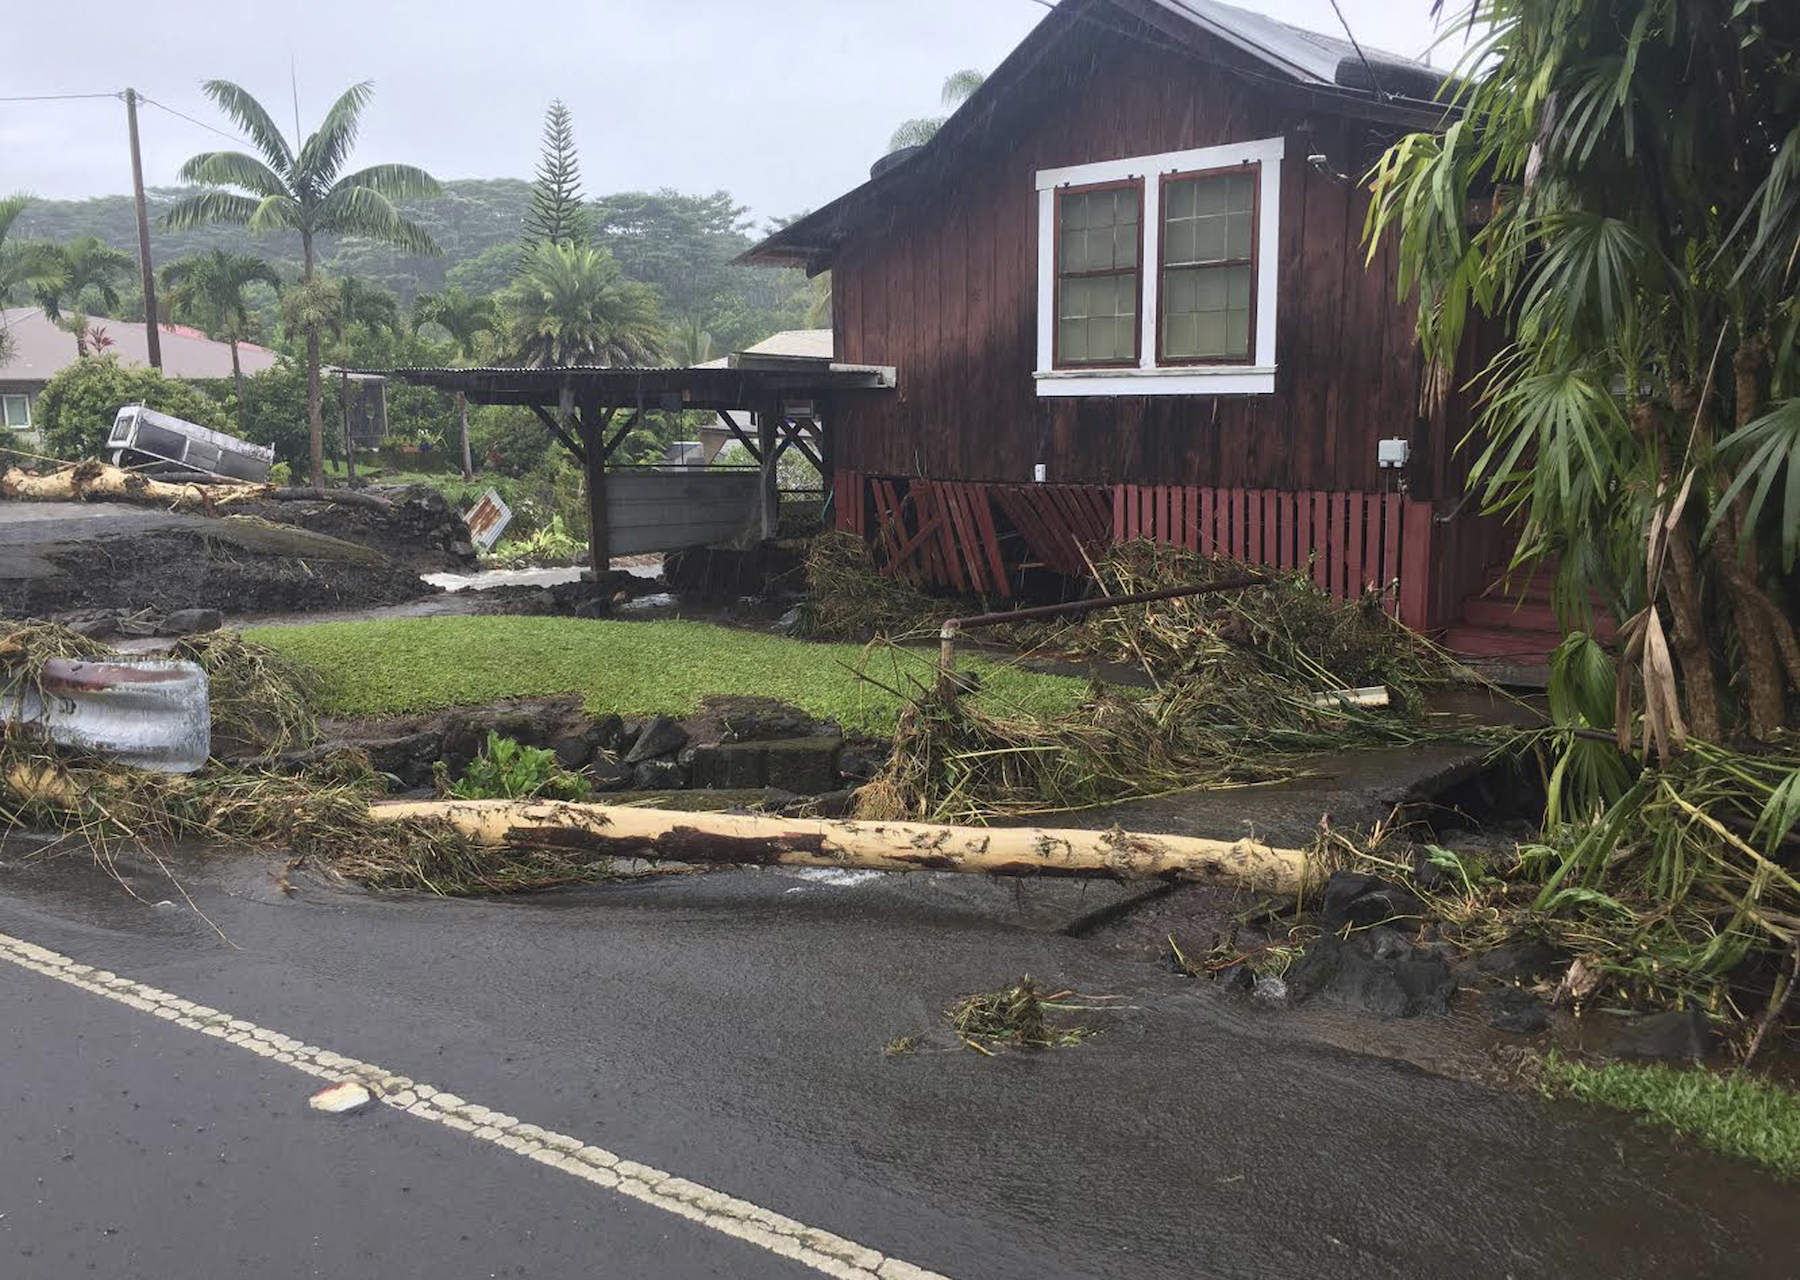 "<div class=""meta image-caption""><div class=""origin-logo origin-image ap""><span>AP</span></div><span class=""caption-text"">This photo provided by Jessica Henricks shows damage from Hurricane Lane Friday, Aug. 24, 2018, near Hilo, Hawaii. (Jessica Henricks via AP)</span></div>"